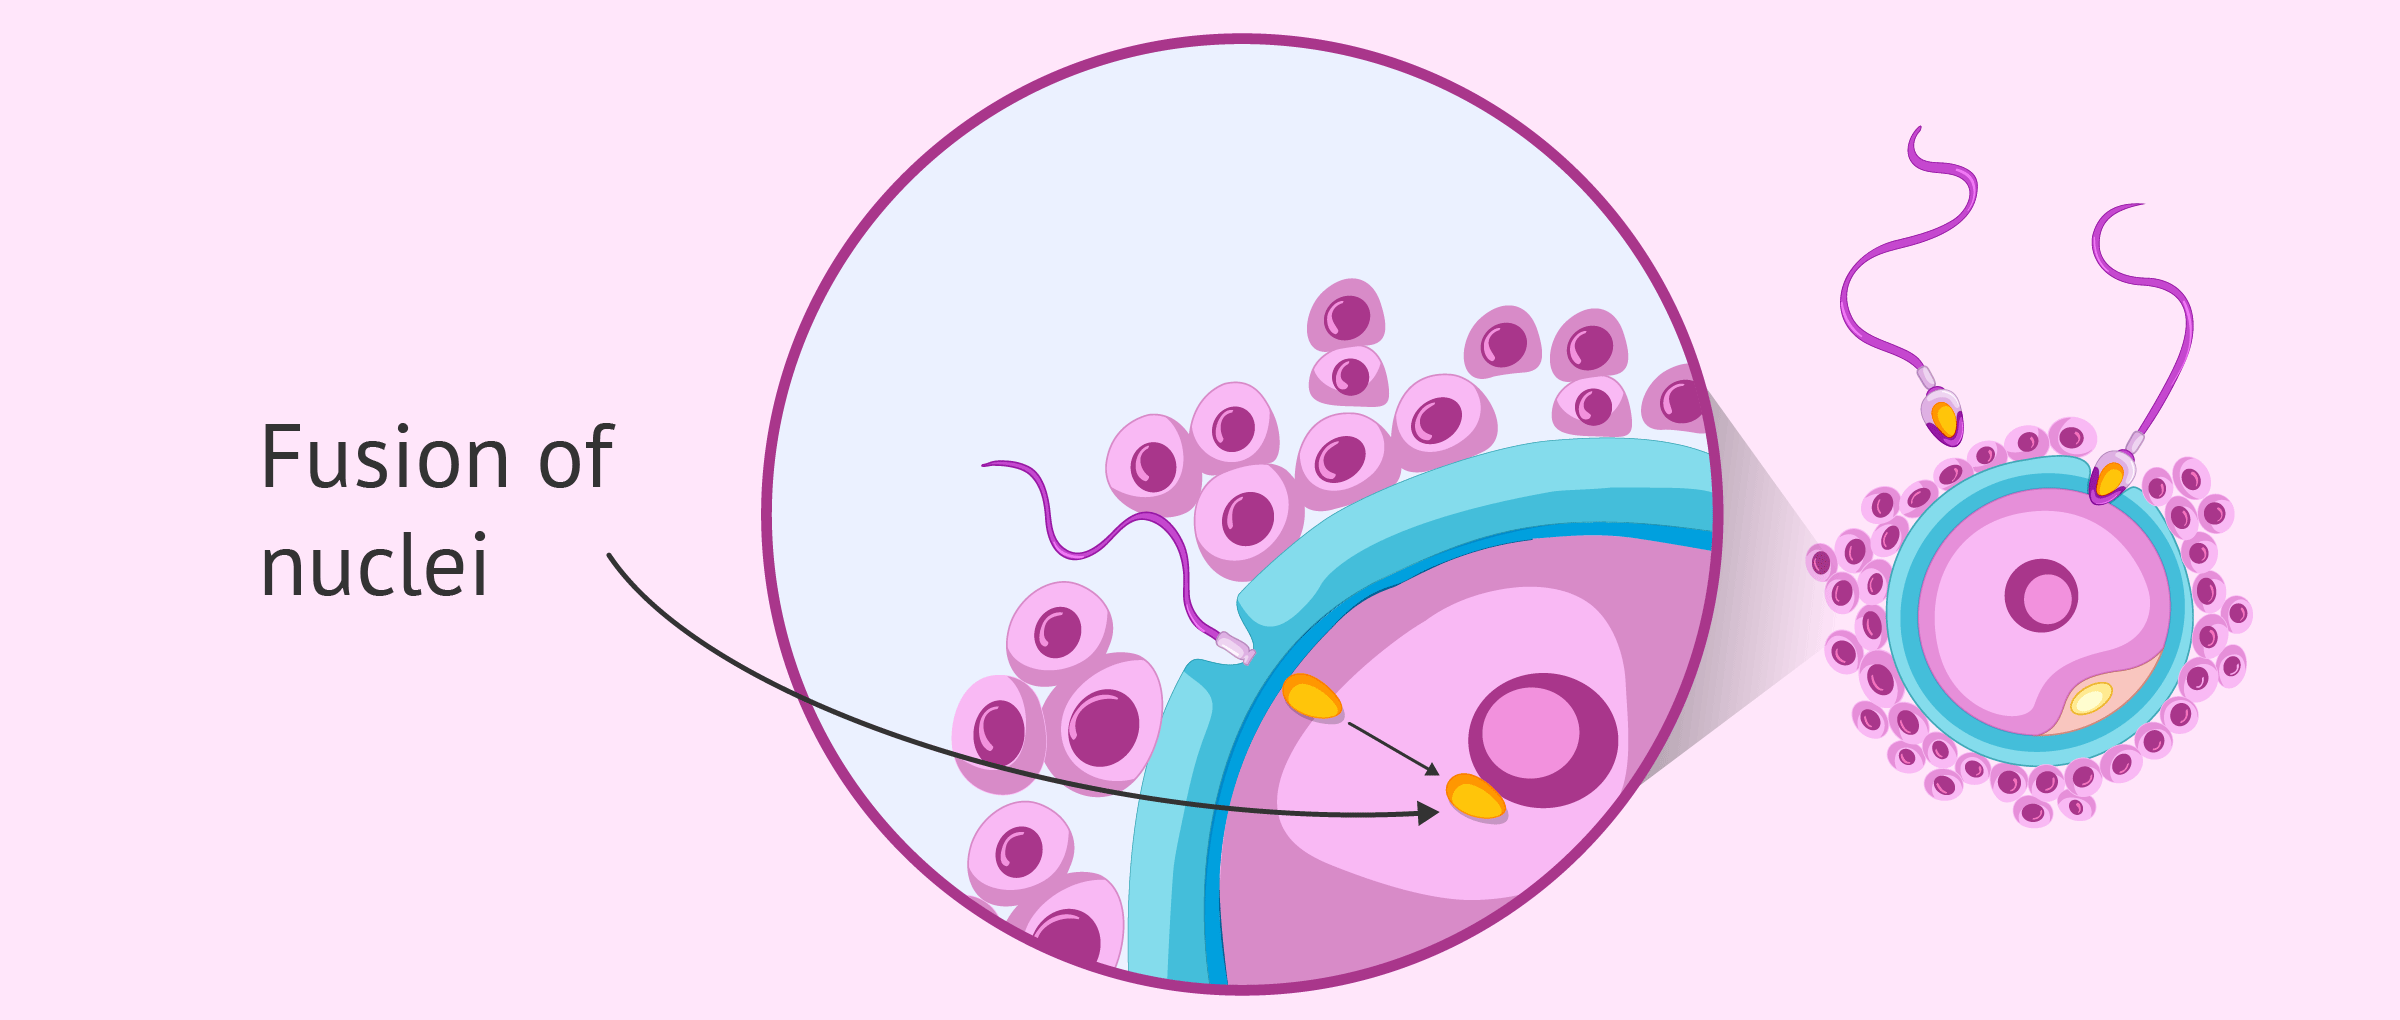 Fusion of egg and sperm nuclei